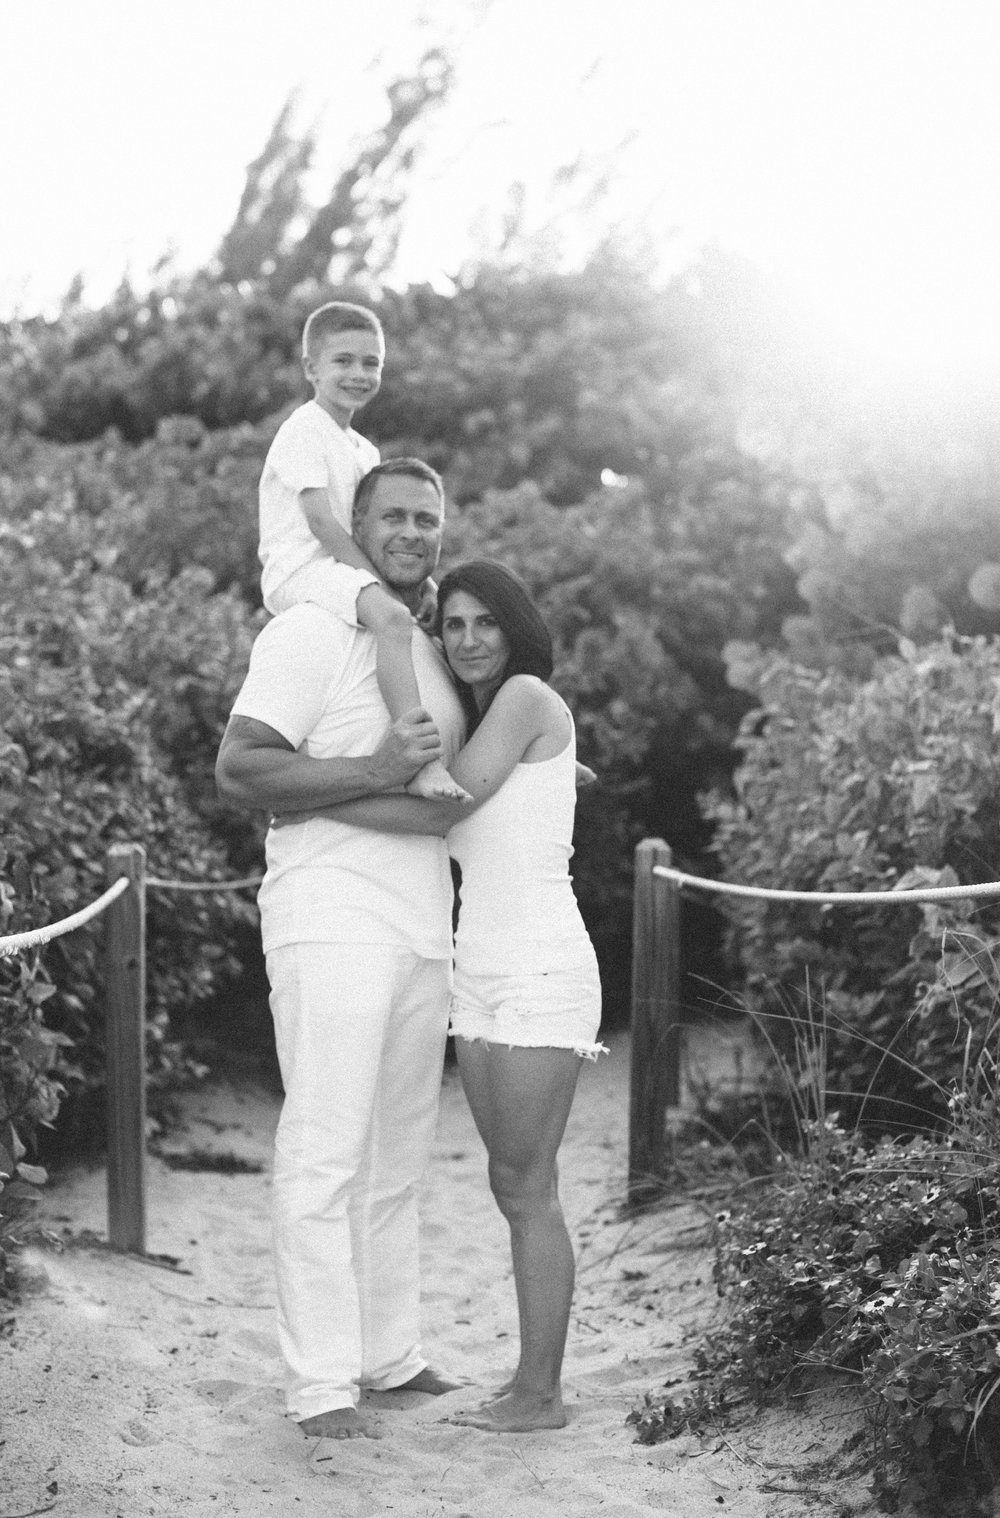 AJ Family Shoot South Inlet Park Boca Raton2.jpg